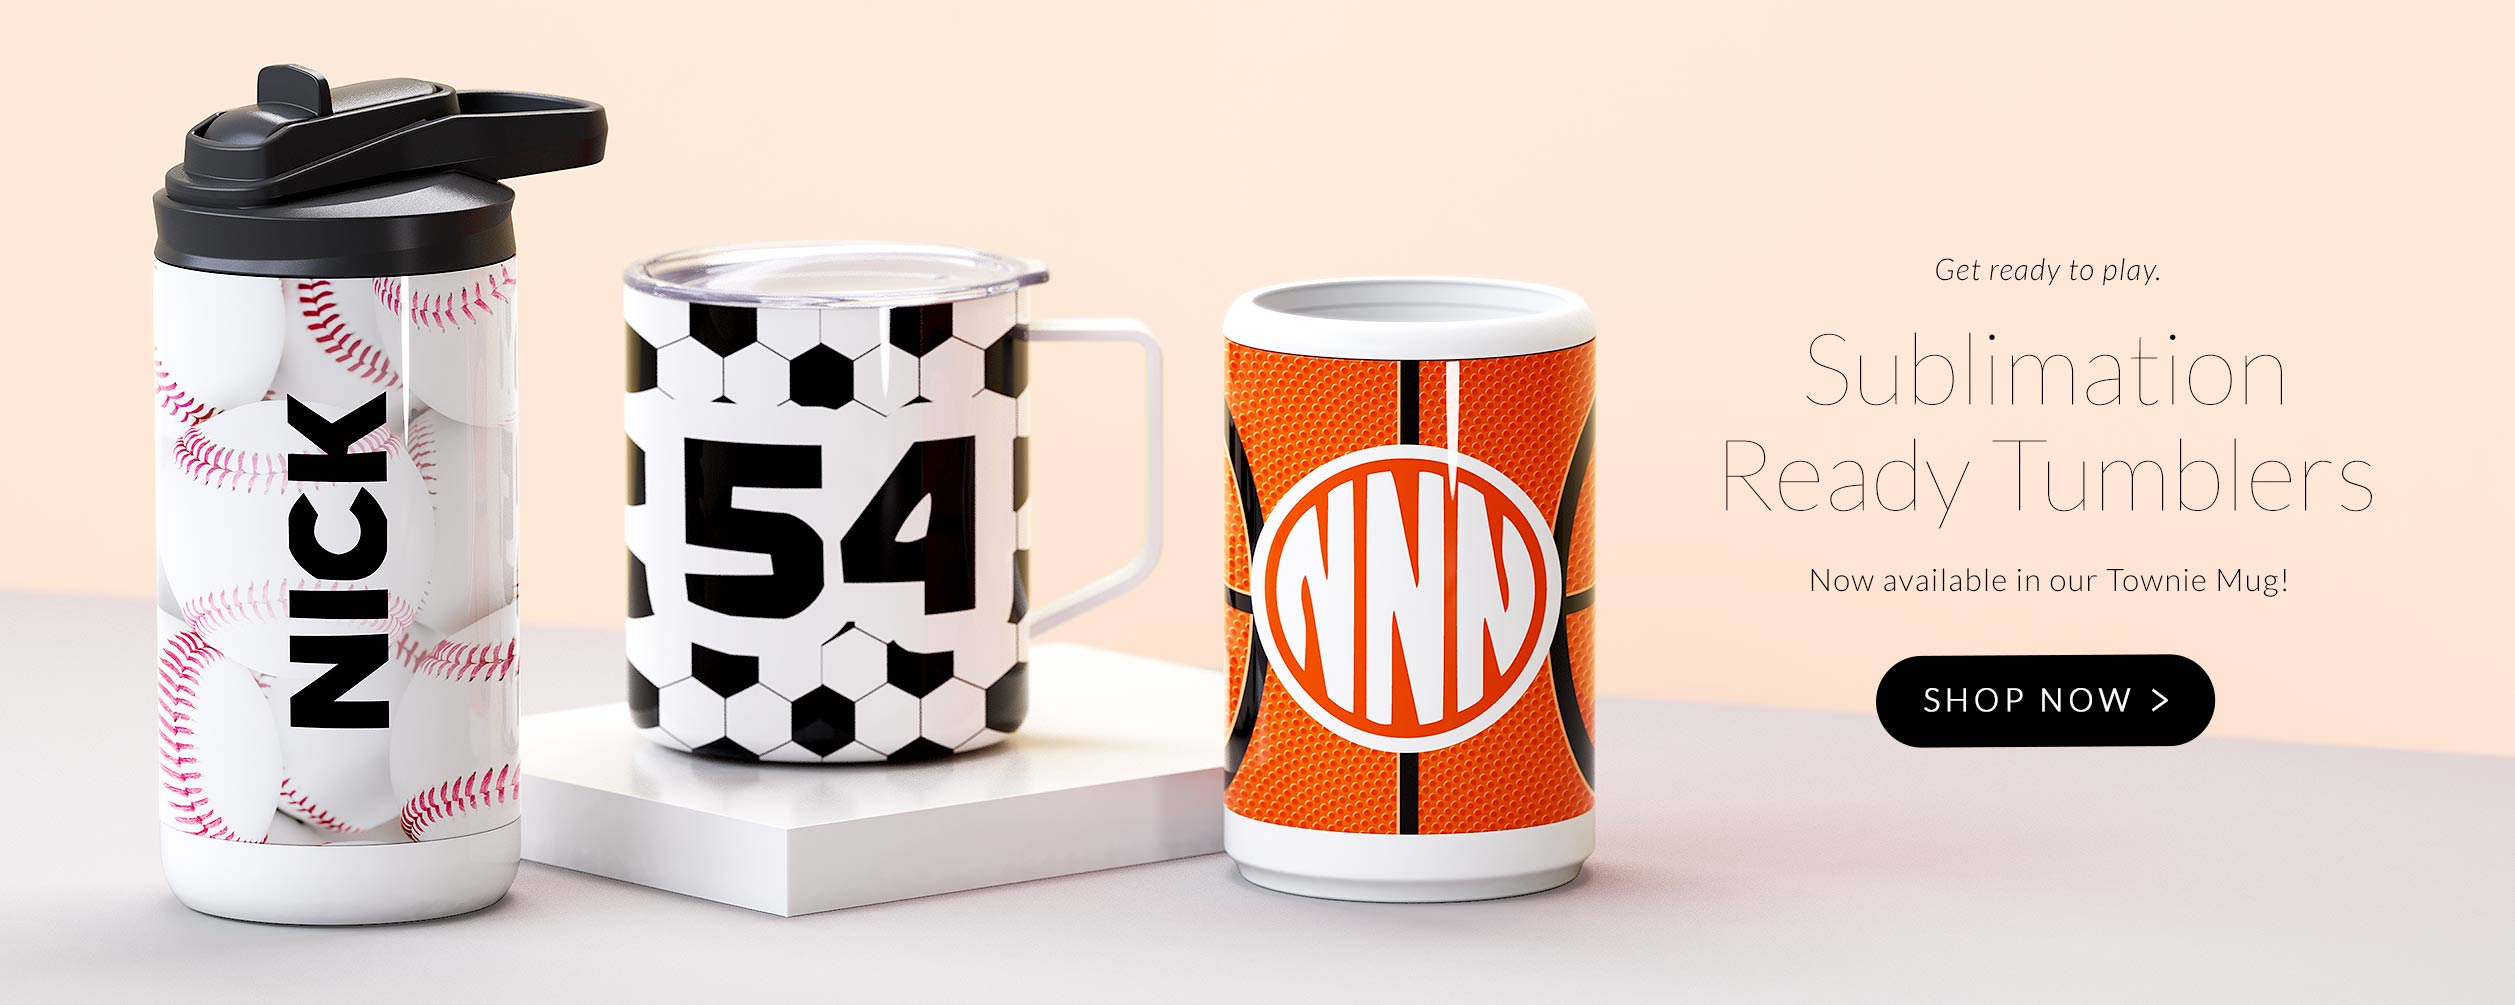 Sublimation Ready Townie Mugs are now available for purchase. Free shipping with low minimums on all orders.